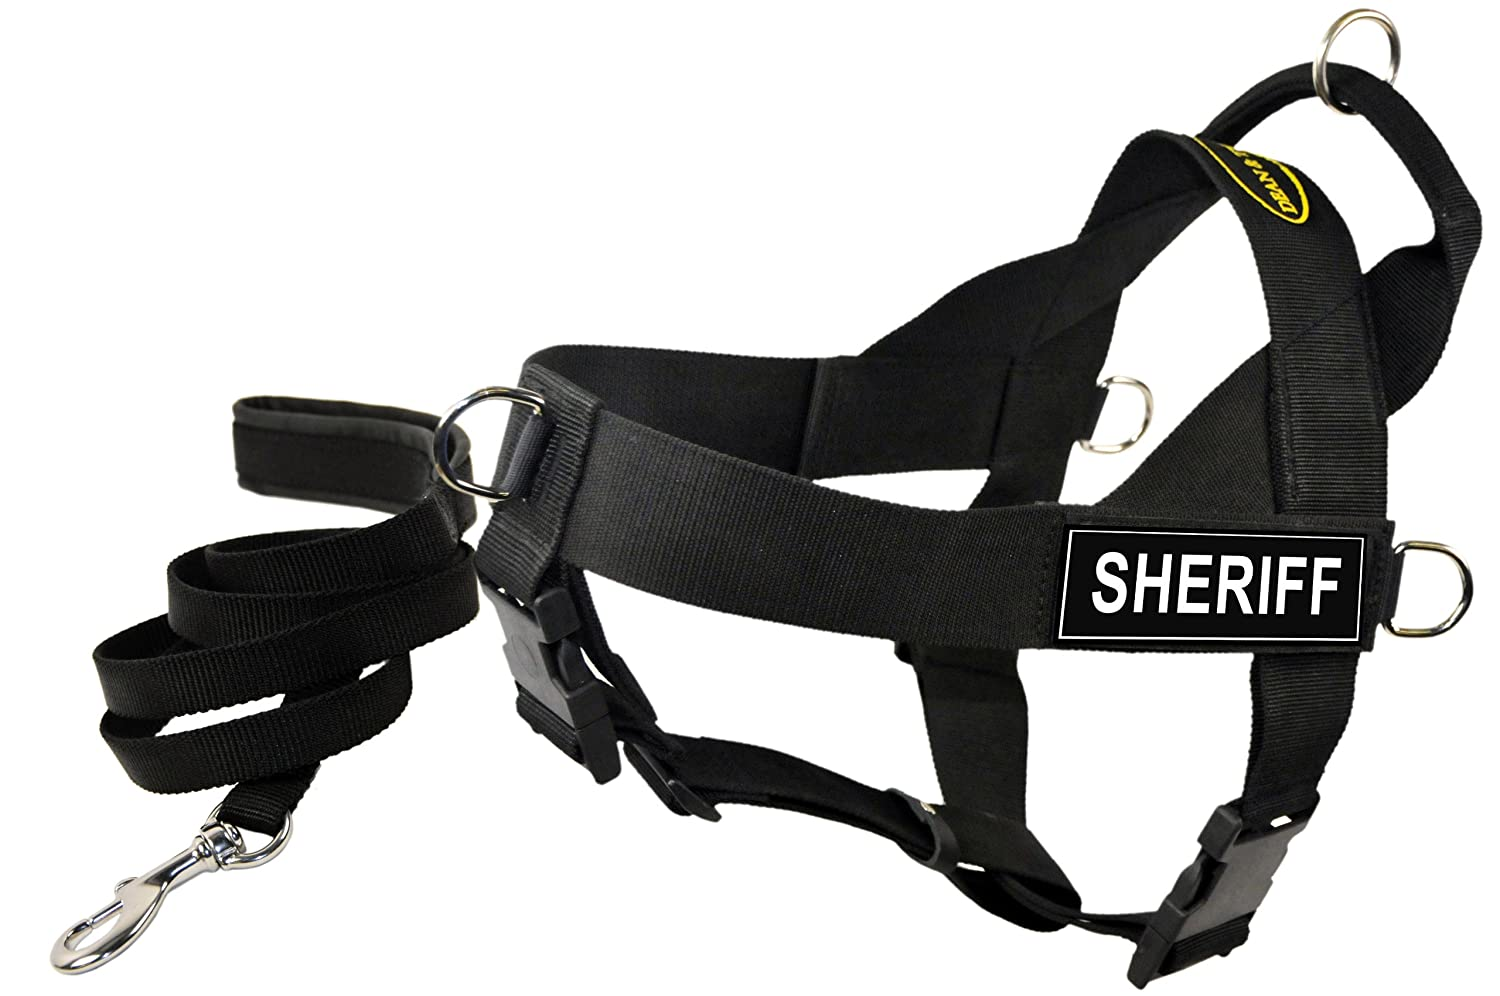 Dean and Tyler Bundle One DT Universal Harness, Sheriff, Medium (26, 32) + One Padded Puppy Leash, 6-Feet Stainless Steel Snap, Black